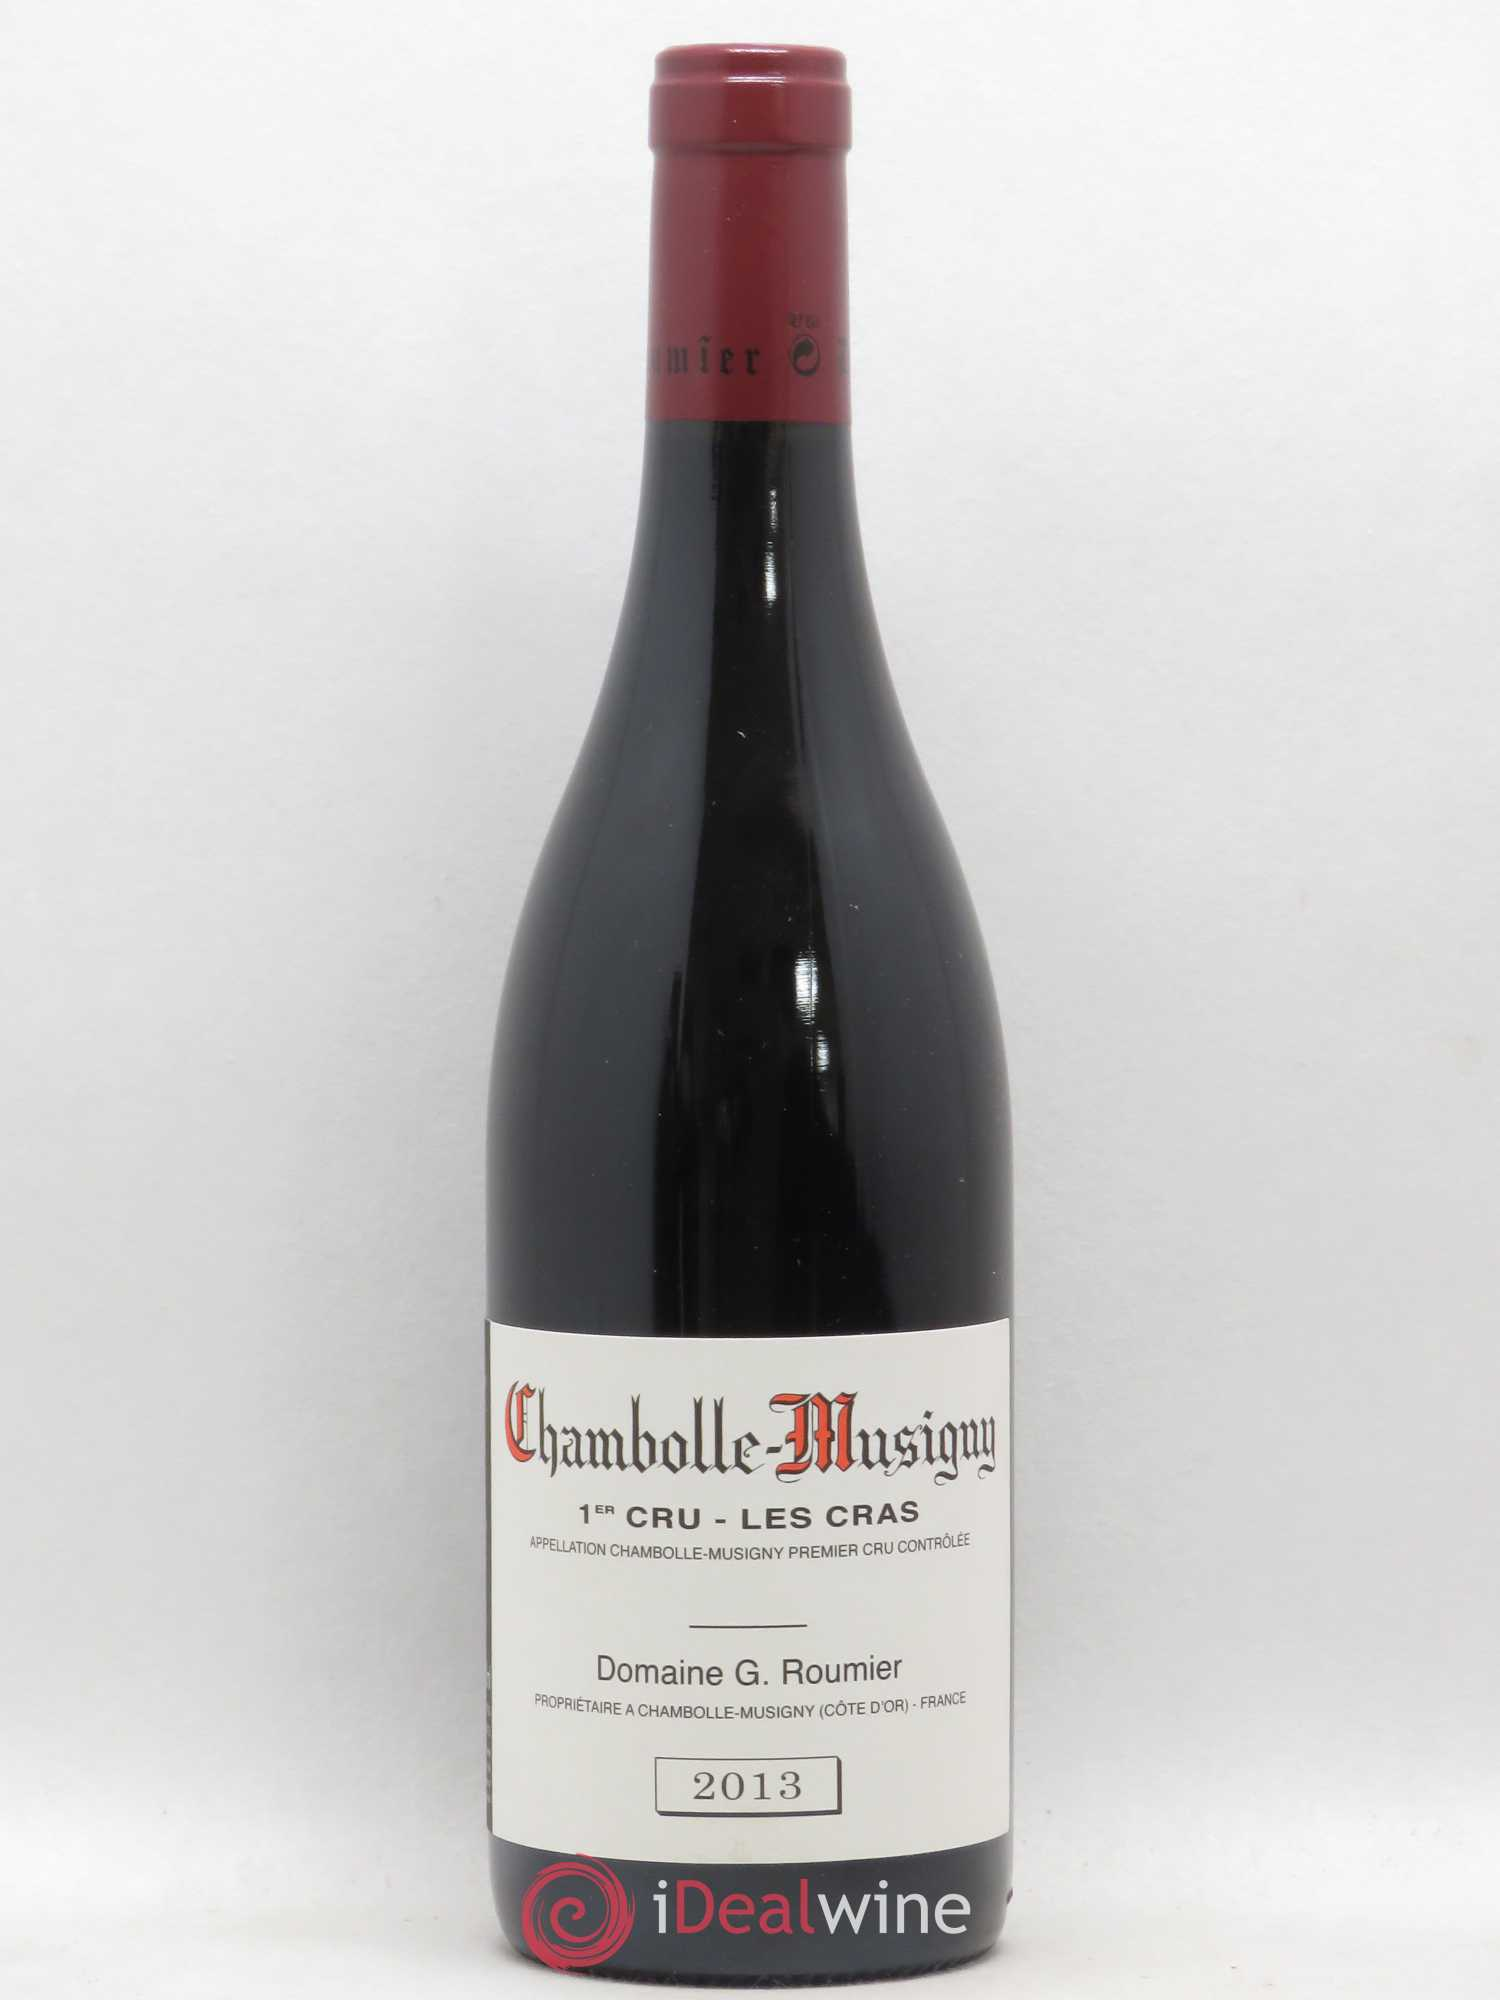 Chambolle-Musigny 1er Cru Les Cras Georges Roumier (Domaine)  2013 - Lot of 1 Bottle